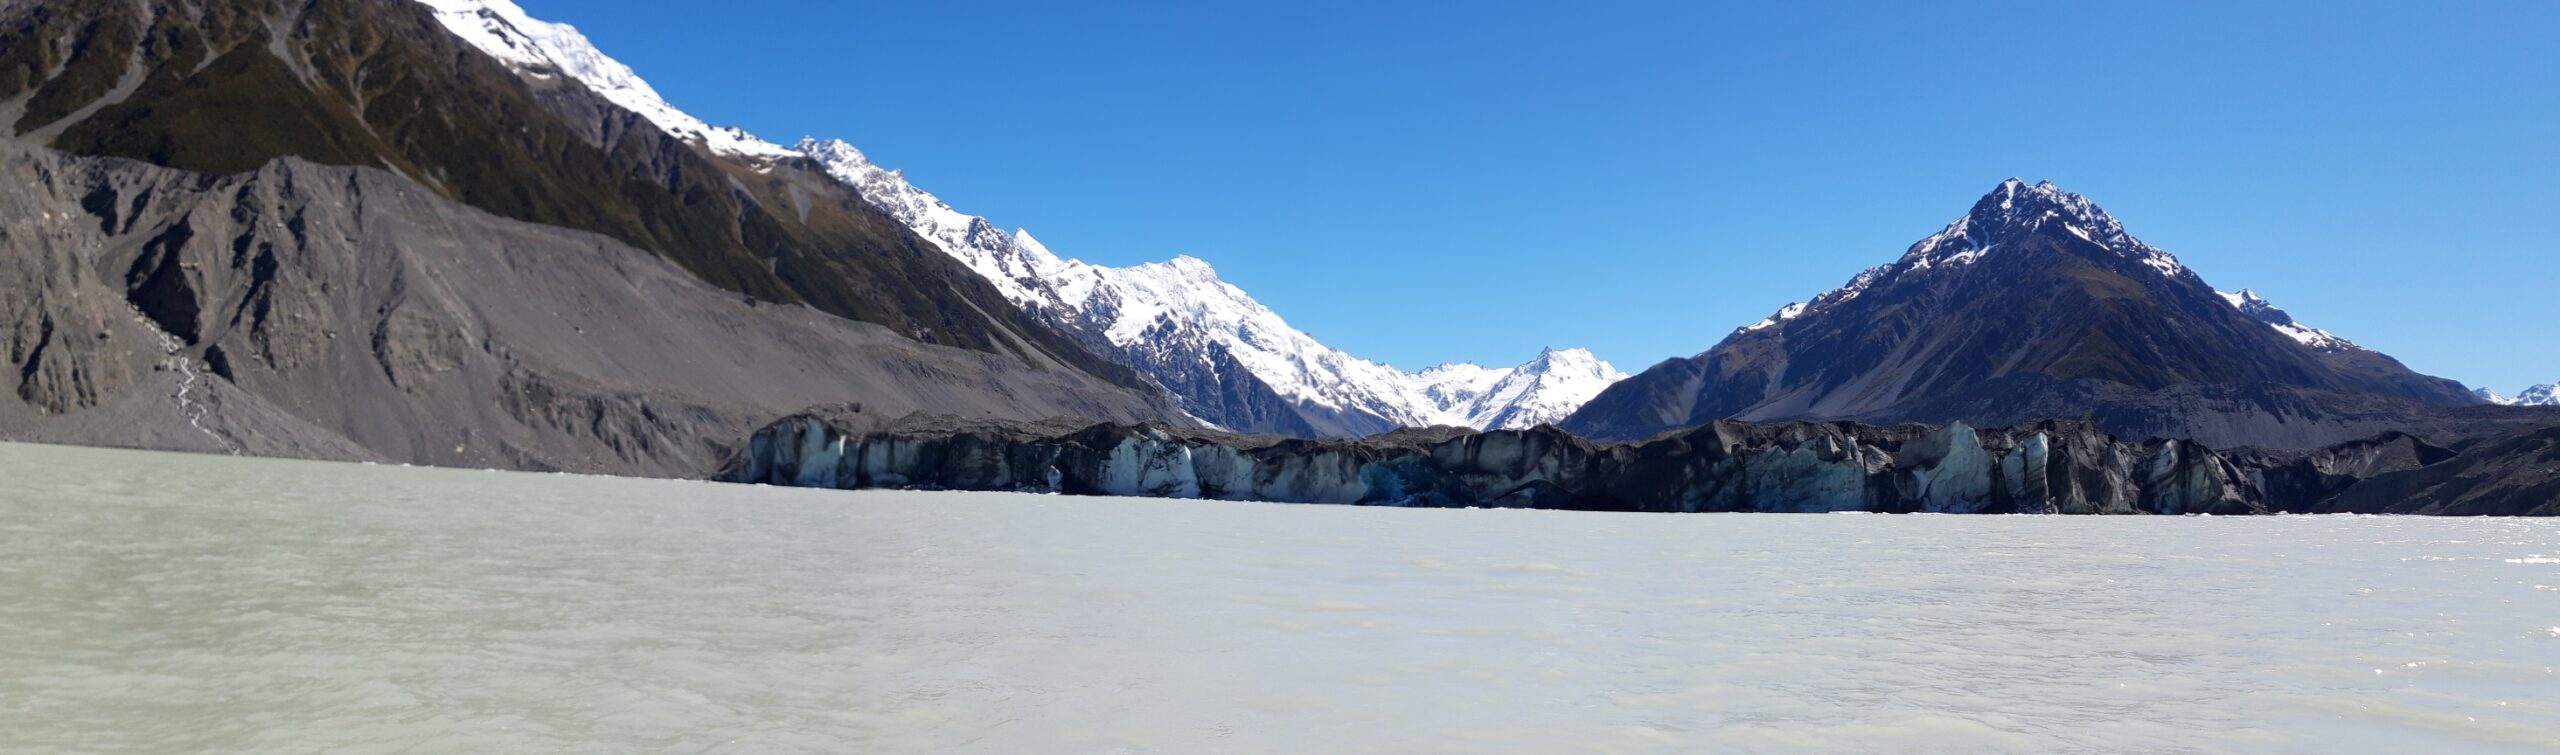 20191228_105317 - Neuseeland - Canterbury NZ - Mount Cook Village (NZ) - Aoraki/Mt. Cook (3.724M) - Mt. Tasman - Mt. Graham - Novara Peak - Bootsfahrt - Zodiac - Tasman Lake See - Tasman Gletscher - blauer Himmel - Eisberg